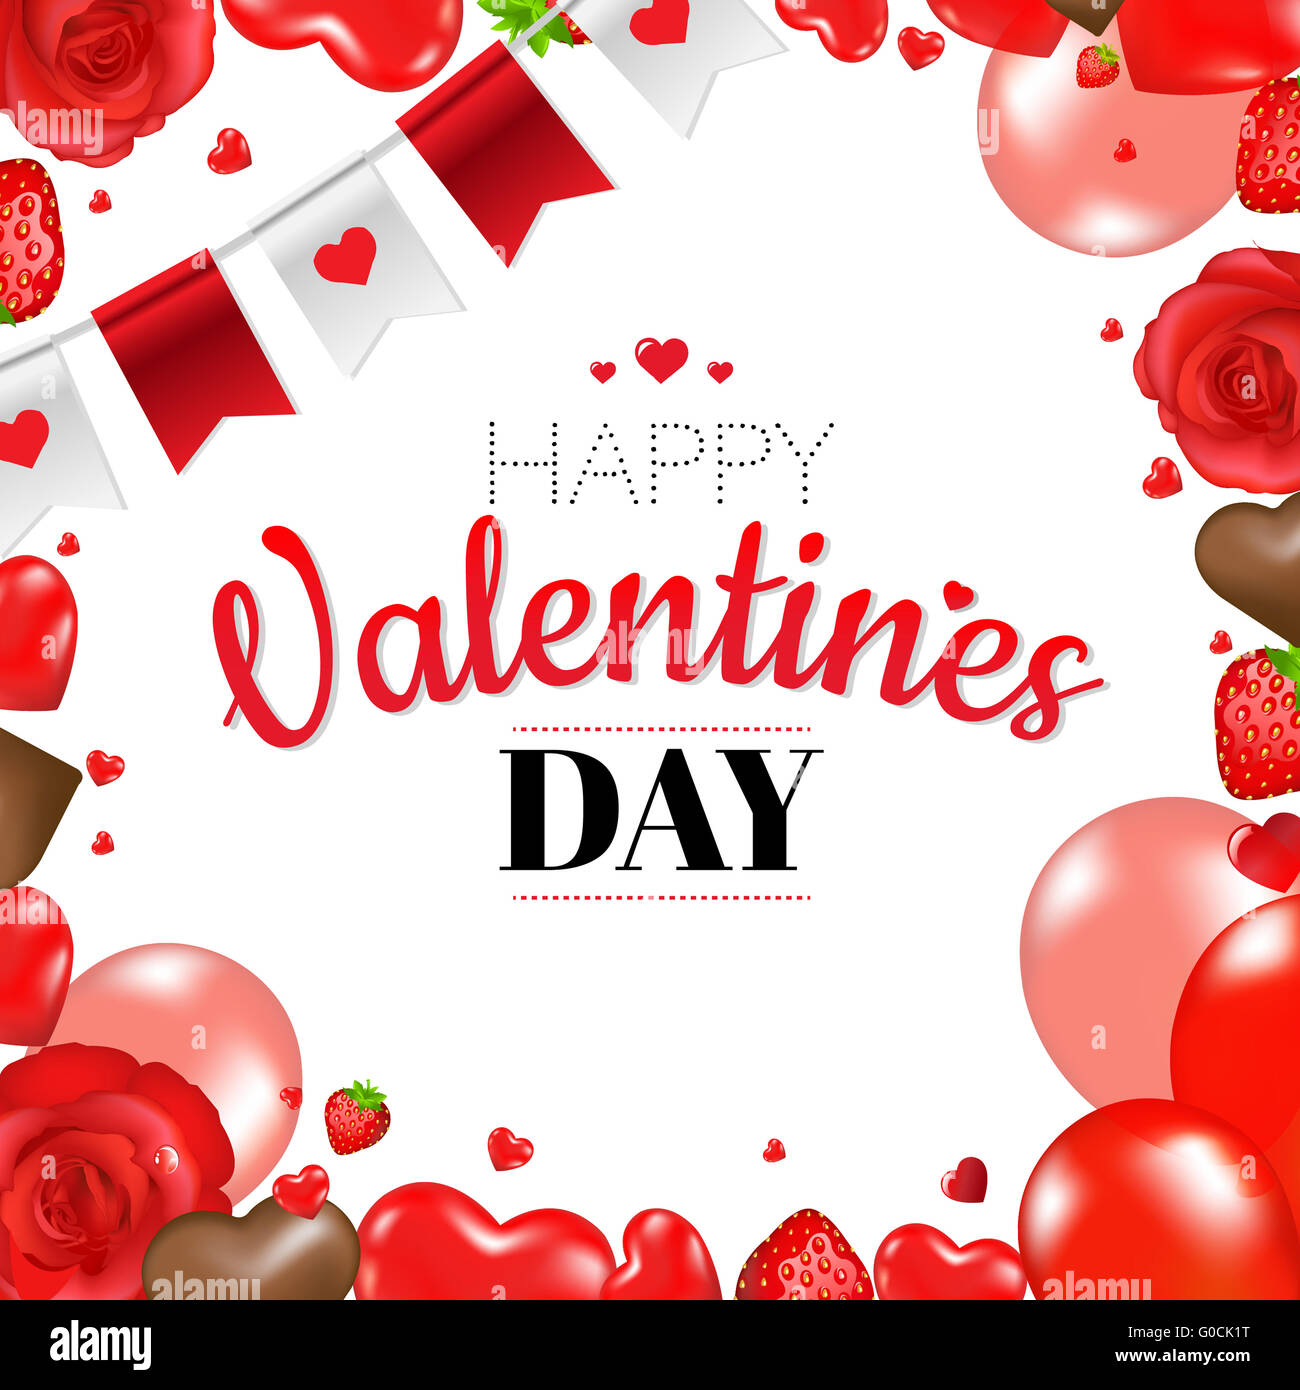 dress - Valentines Happy day border pictures video